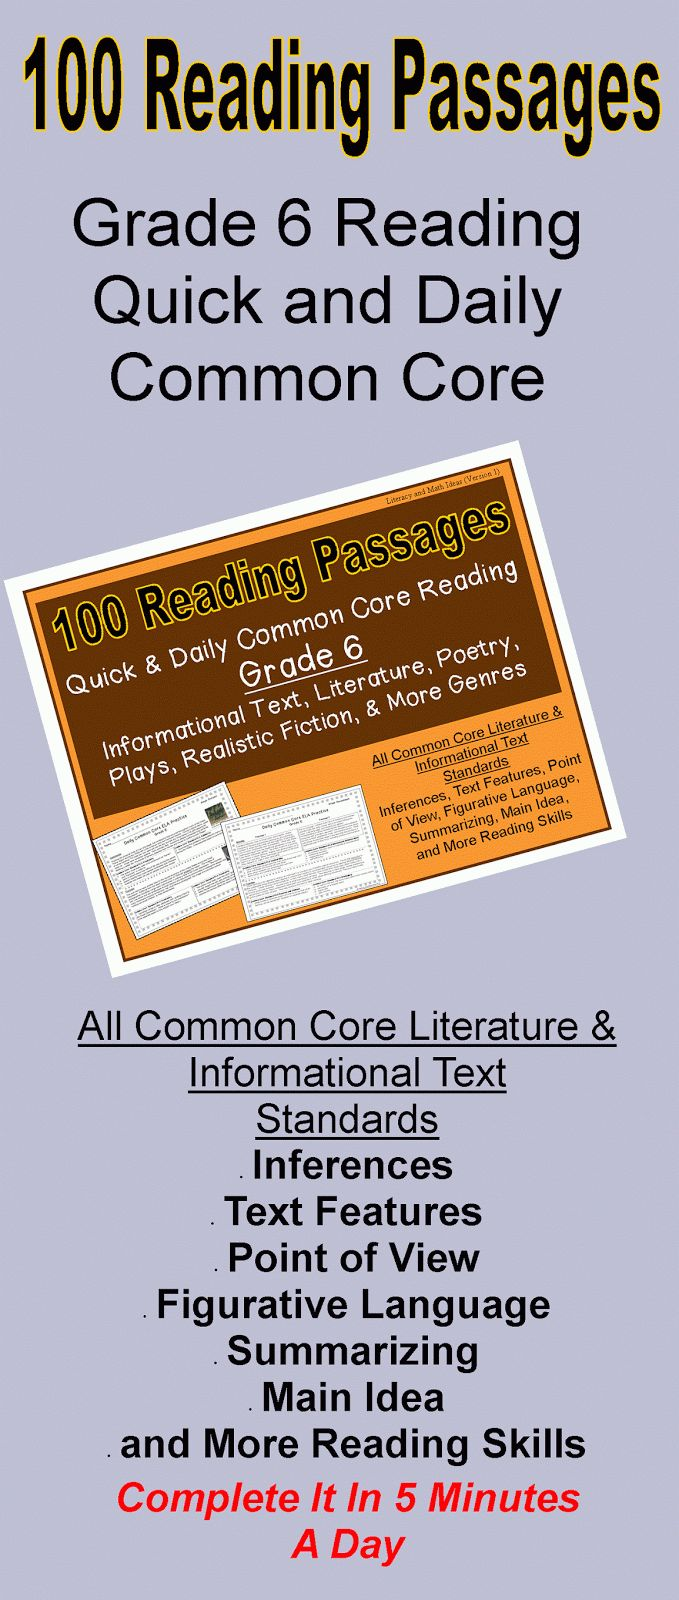 (100 Reading Passages)-- 20 Weeks of Grade 6 Daily Common Core Reading Practice in Just 5 Minutes a Day--Every Common Core Literature and Informational Text Standard is Covered--Character traits, figurative language, close reading, inference and more are covered.  This is great for steady literature skill review.--informational text, realistic fiction, action, poetry, and historical fiction passages are included$